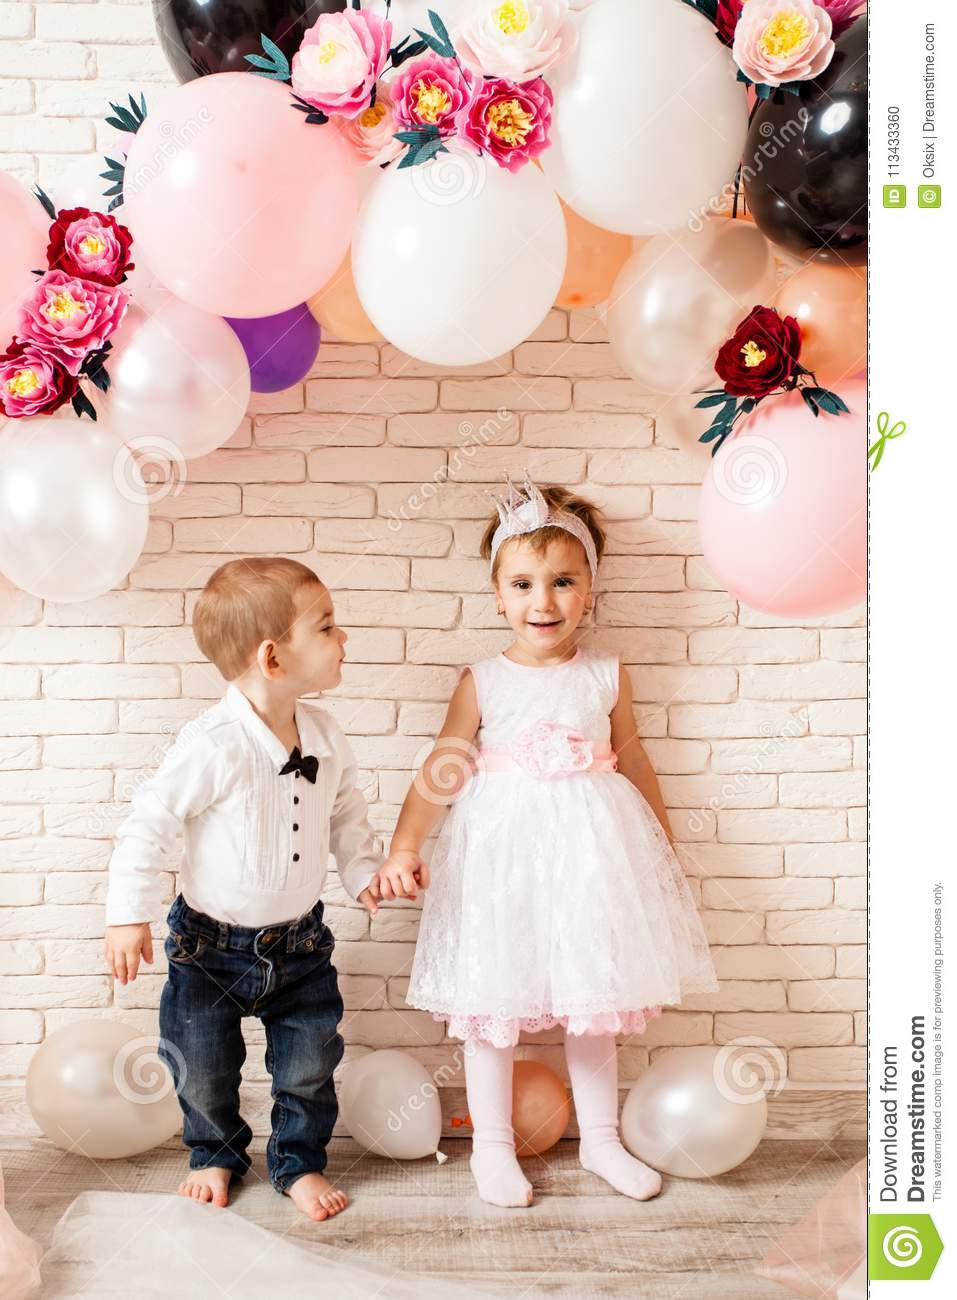 Cute baby boy and girl romantic pic